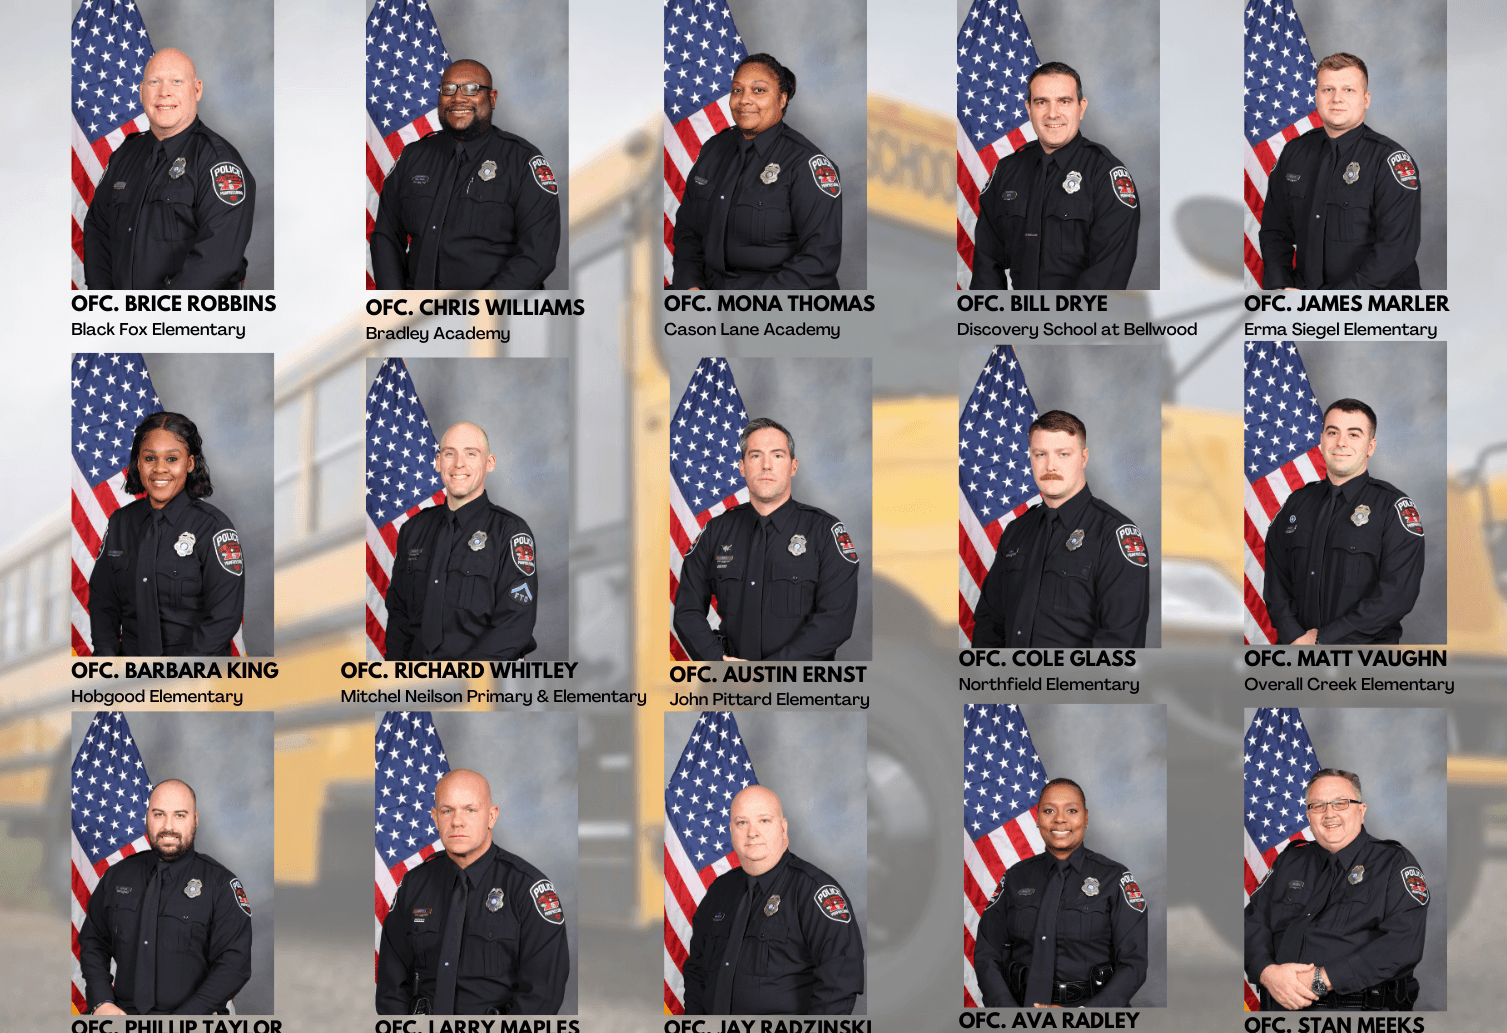 SCHOOL RESOURCE OFFICERS PHOTO